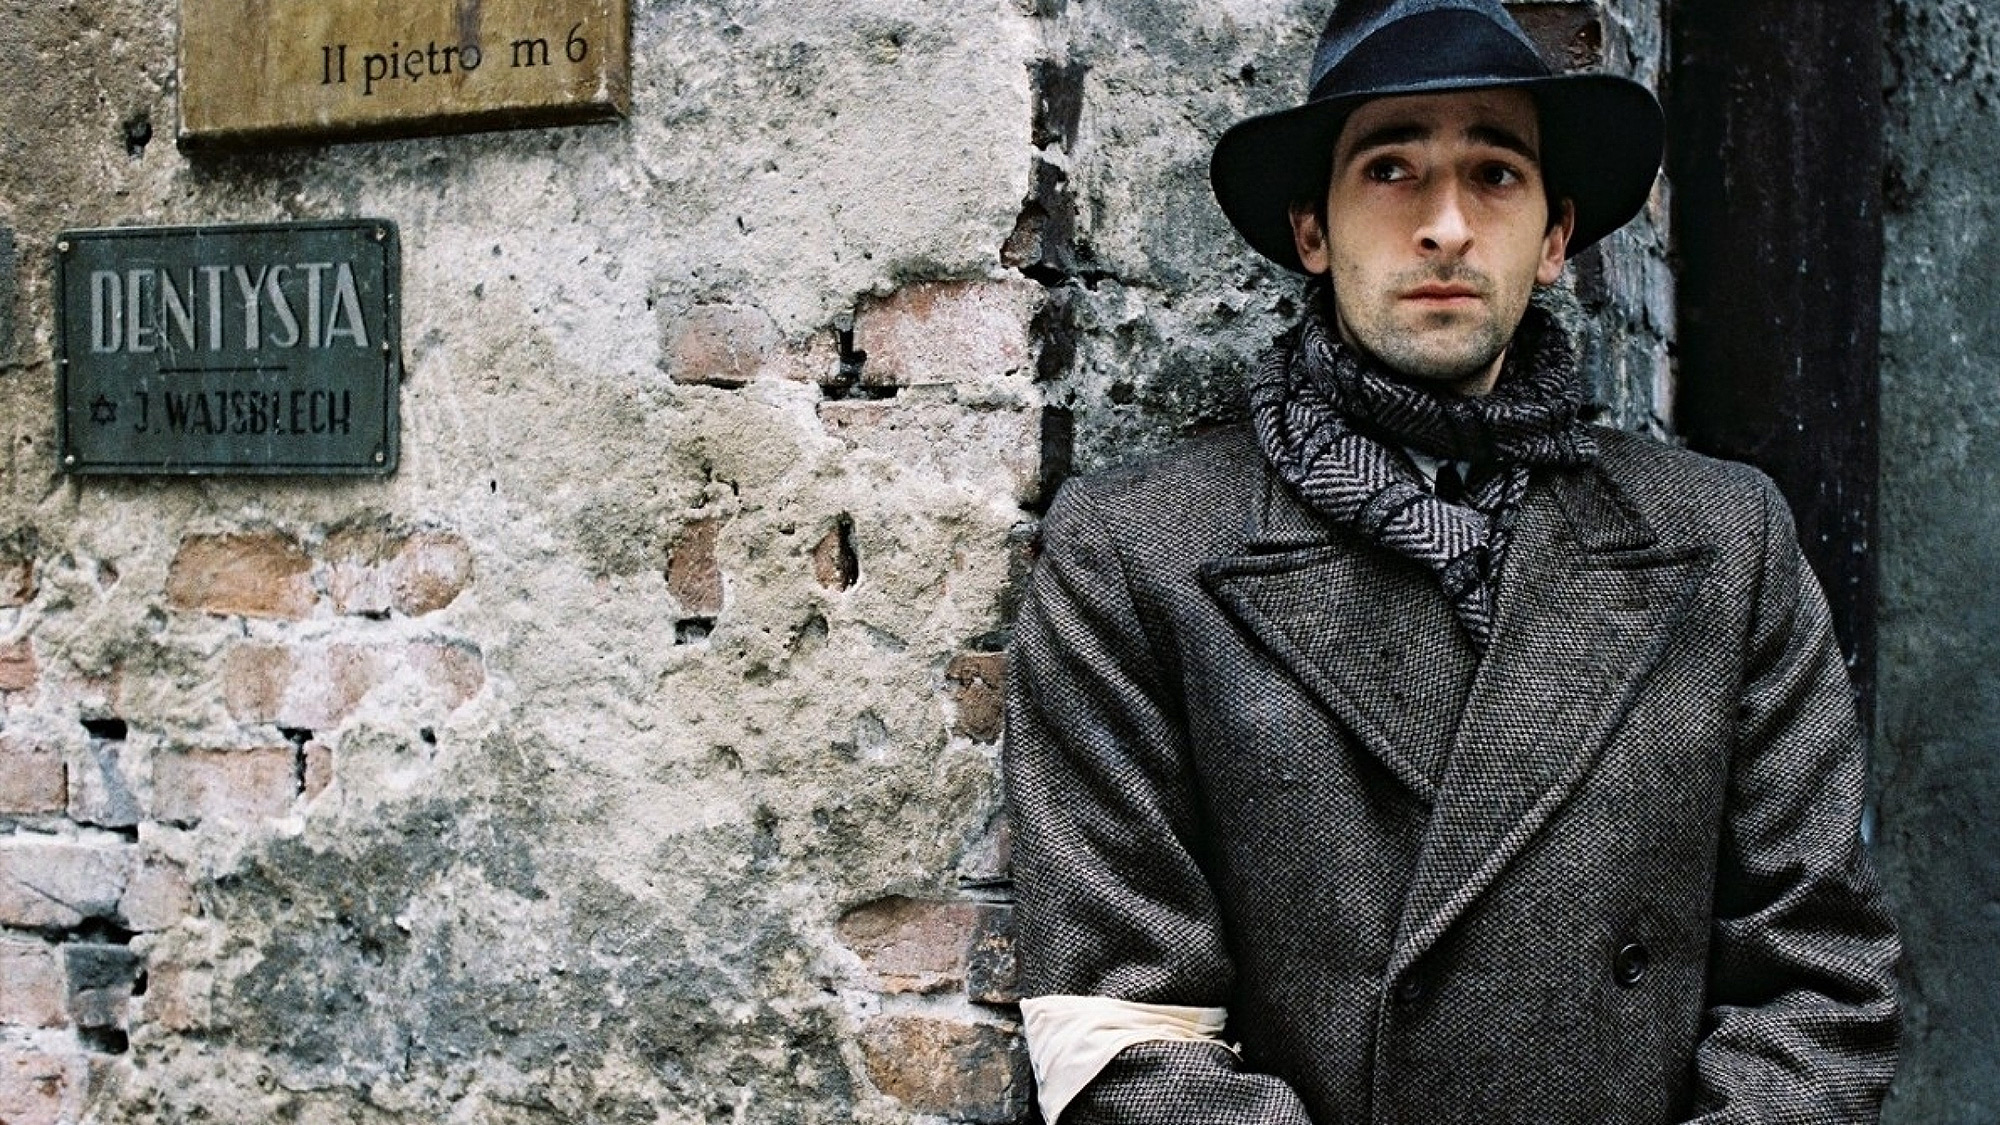 movie the pianist essay Free essay: the captain is two steps above the floor when the captain and the pianist pass through the door, there is no physical contact between them, even.